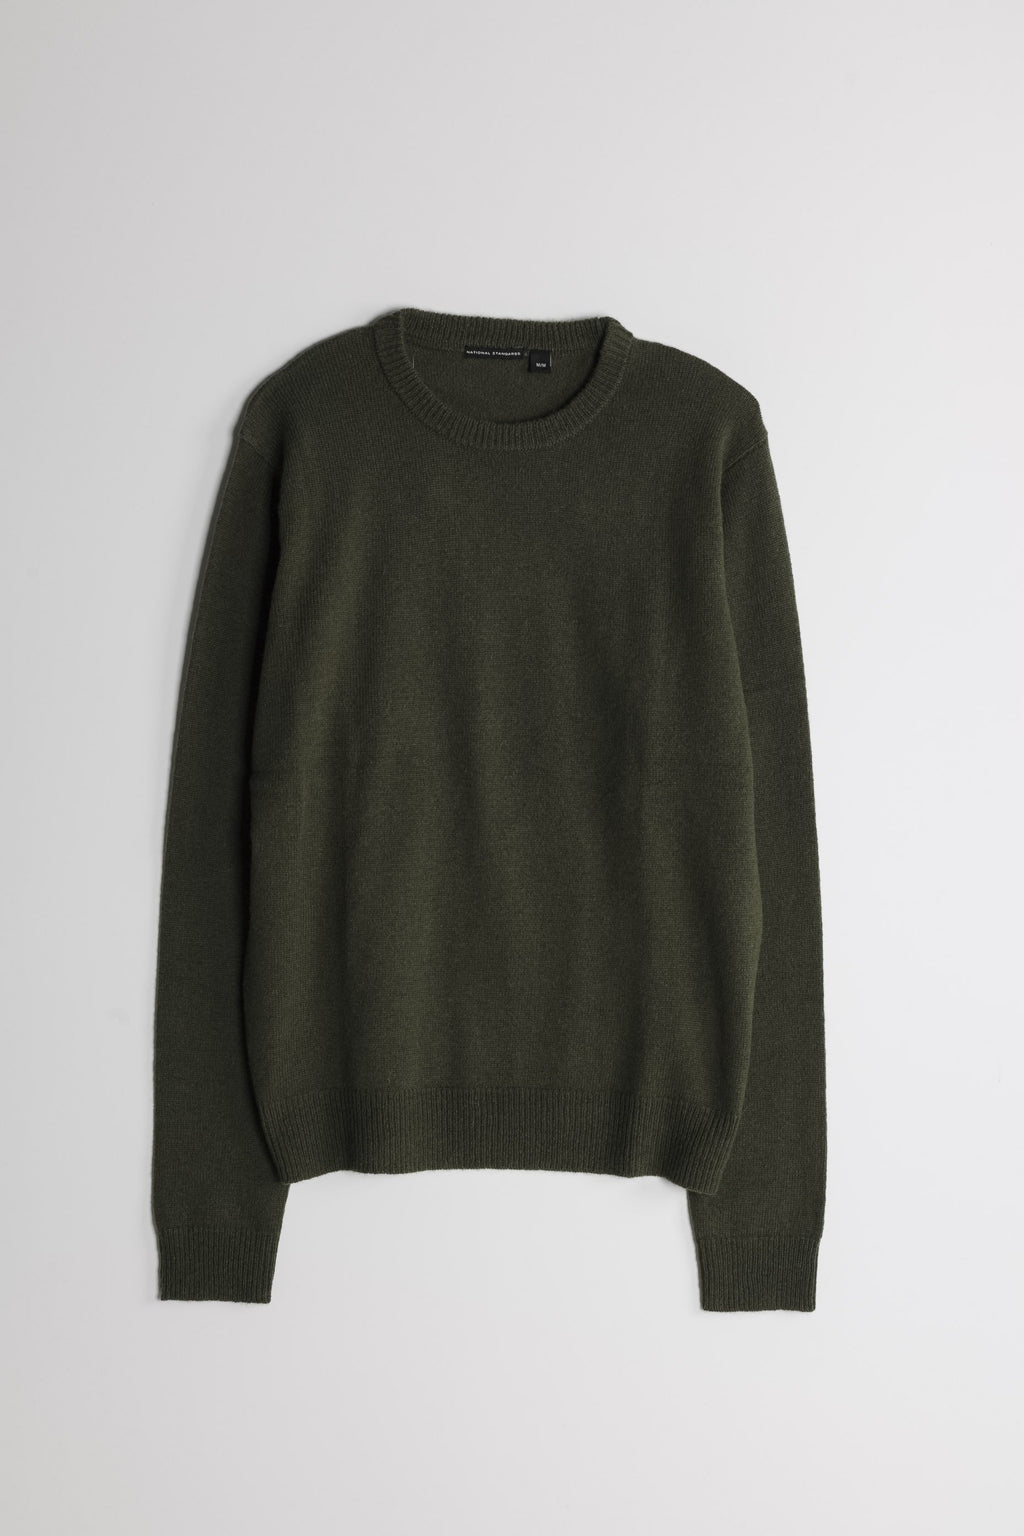 Lambswool Basic Crew in Army Green 01